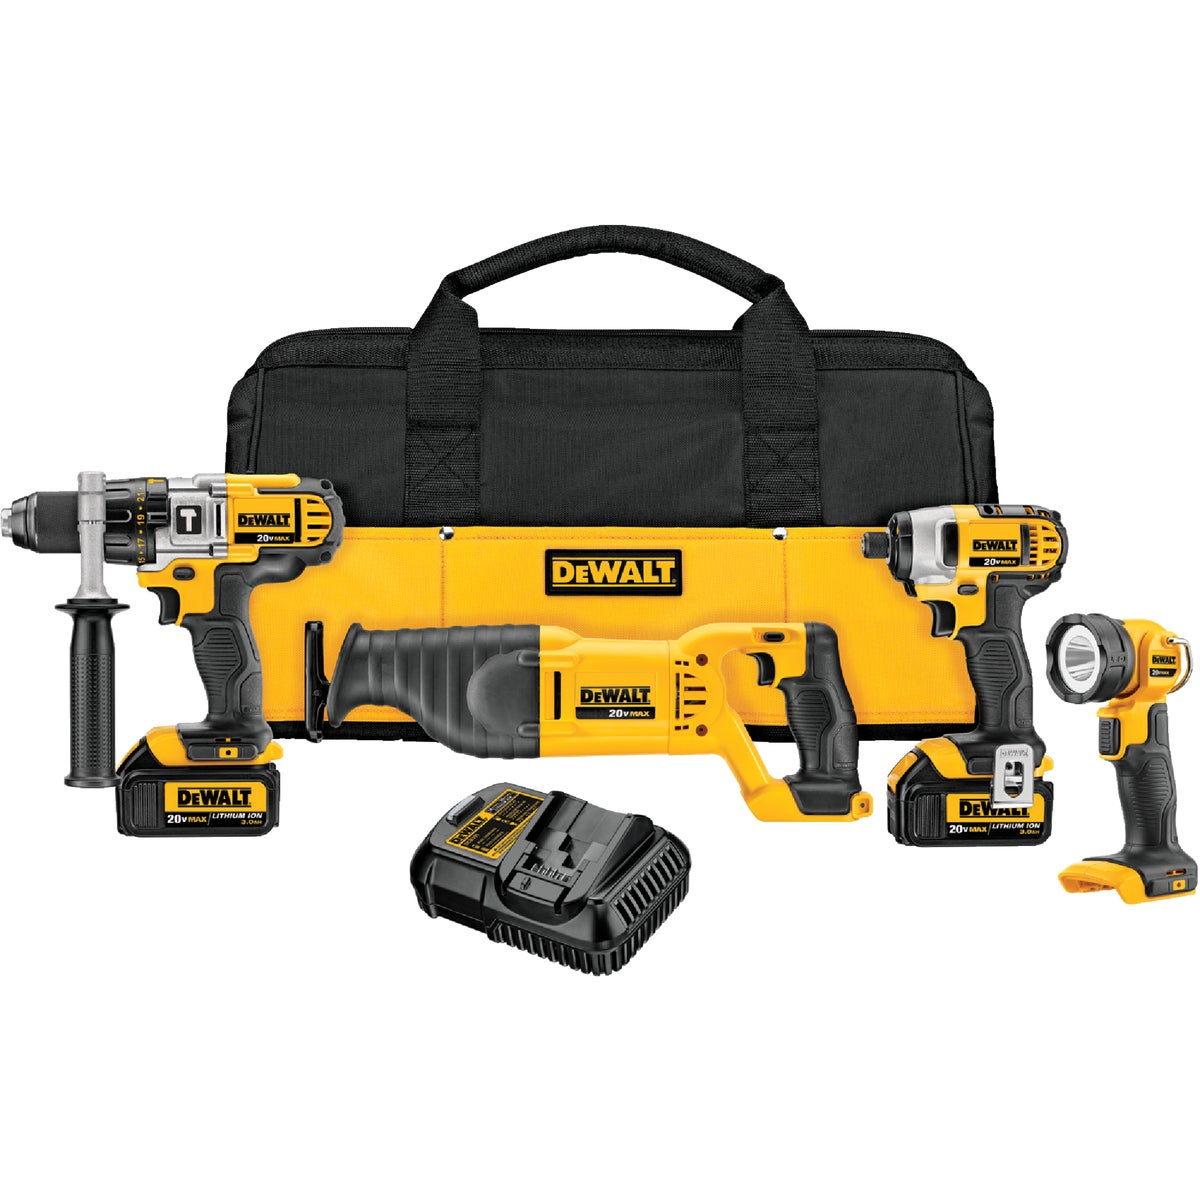 20V 4-TOOL COMBO KIT - DCK490L2 by DeWalt